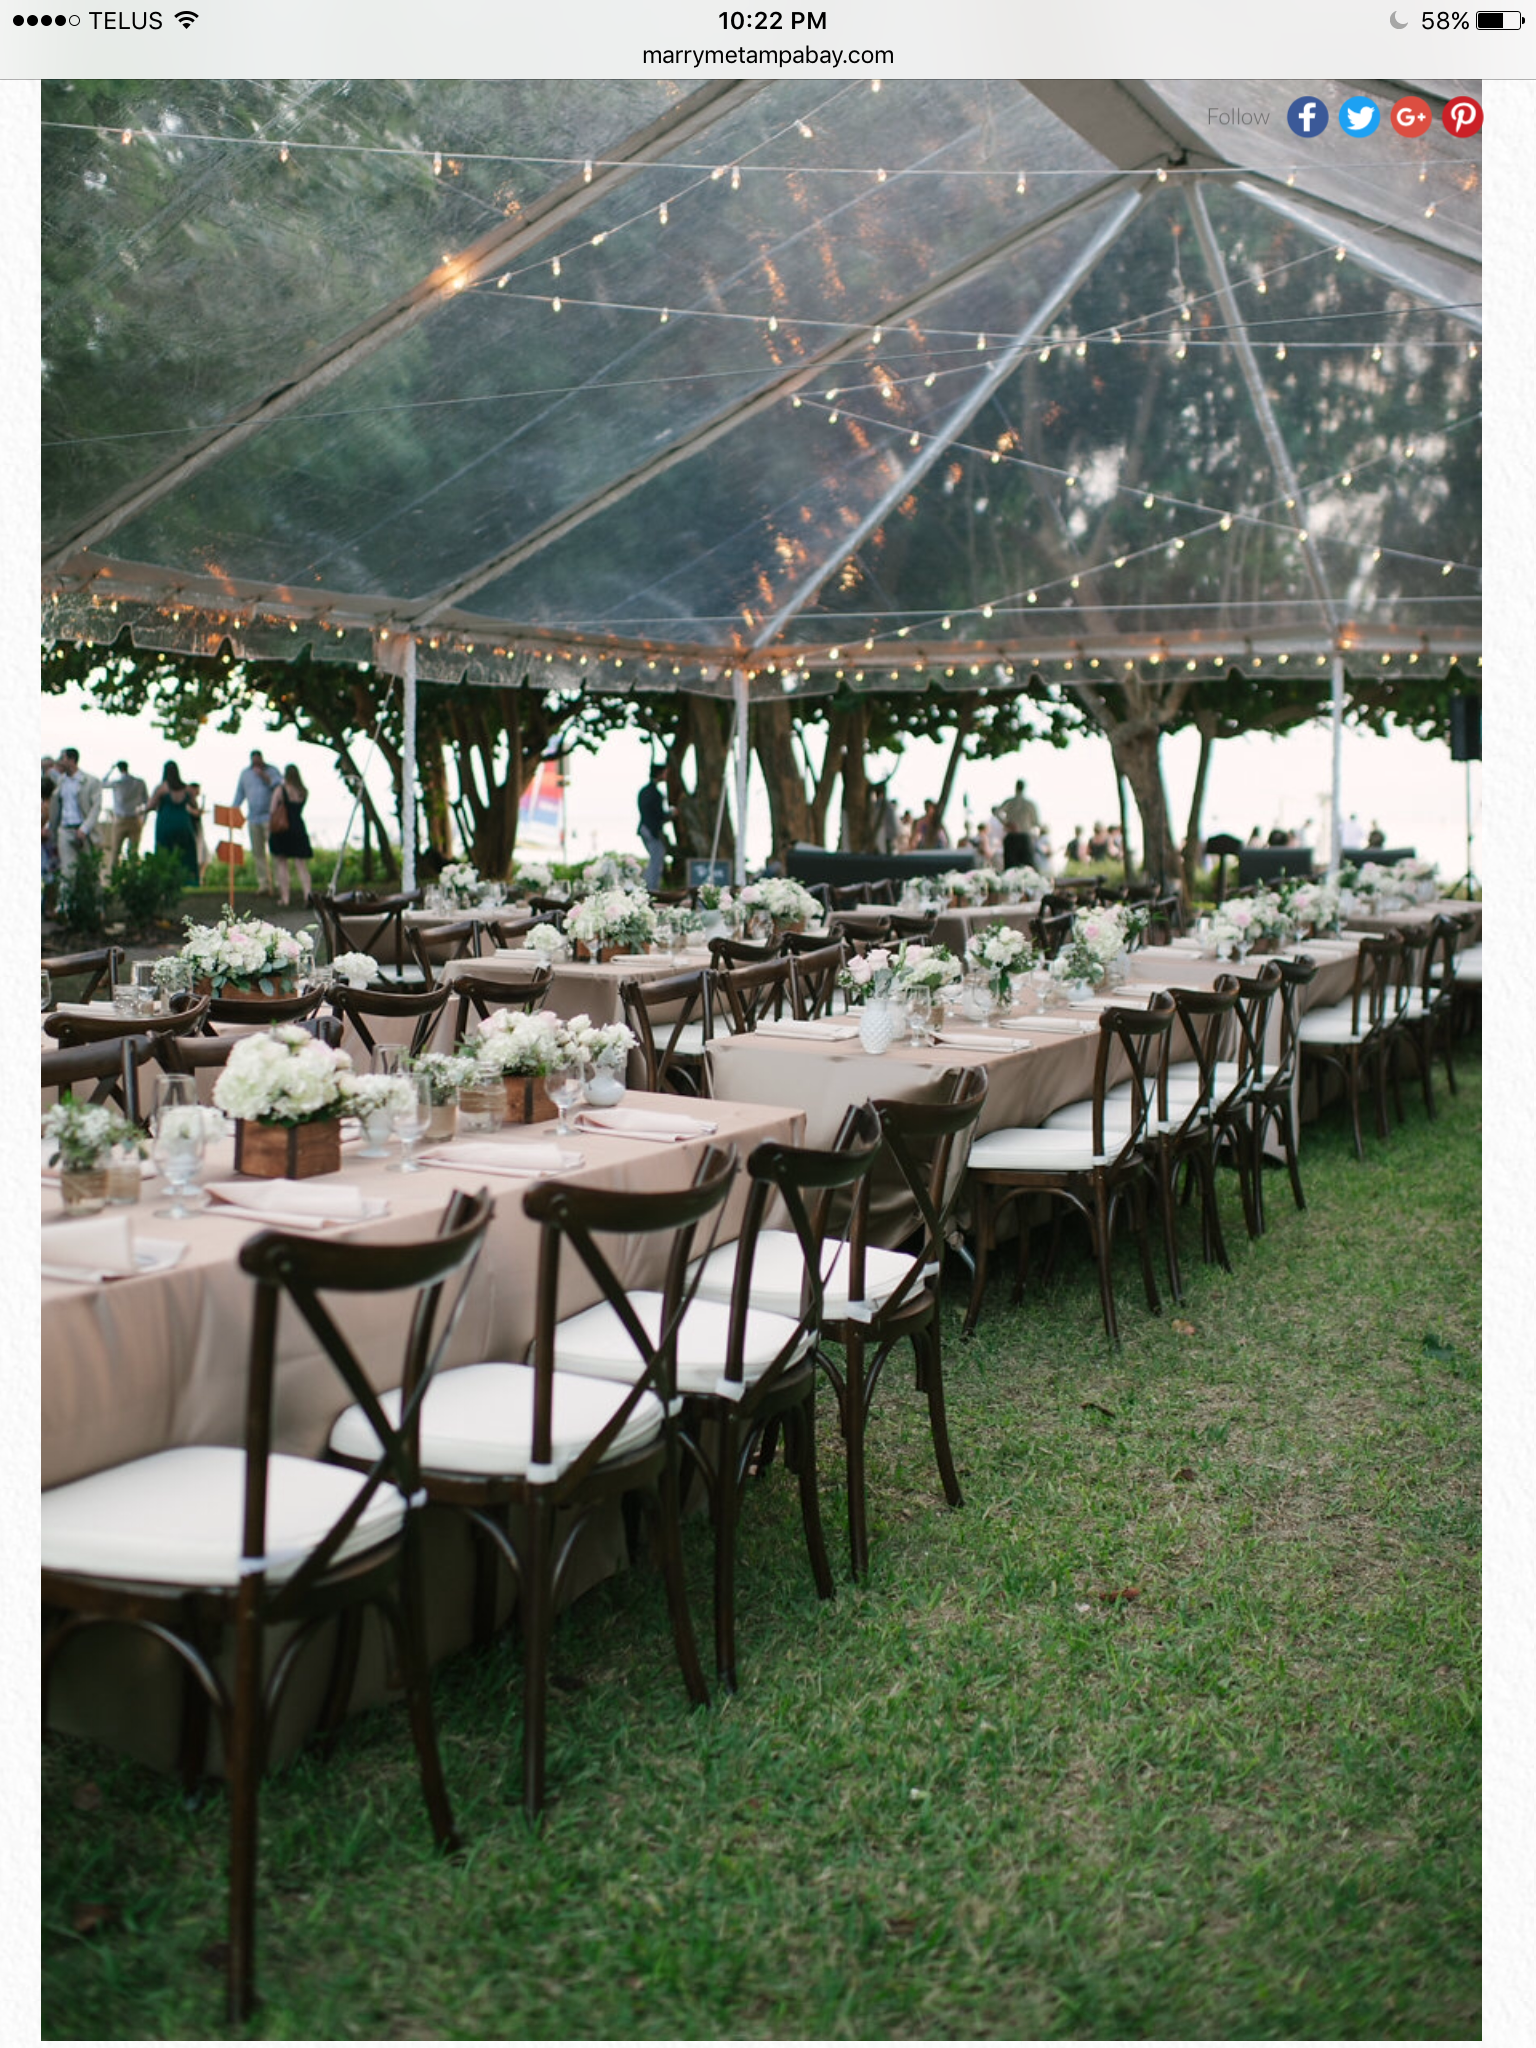 Outdoor Tent Rental, Outdoor Tent Party, Rent A Tent, Event Tent Rental, - Pin By Shay Elizabeth On Weddings In 2018 Pinterest Wedding